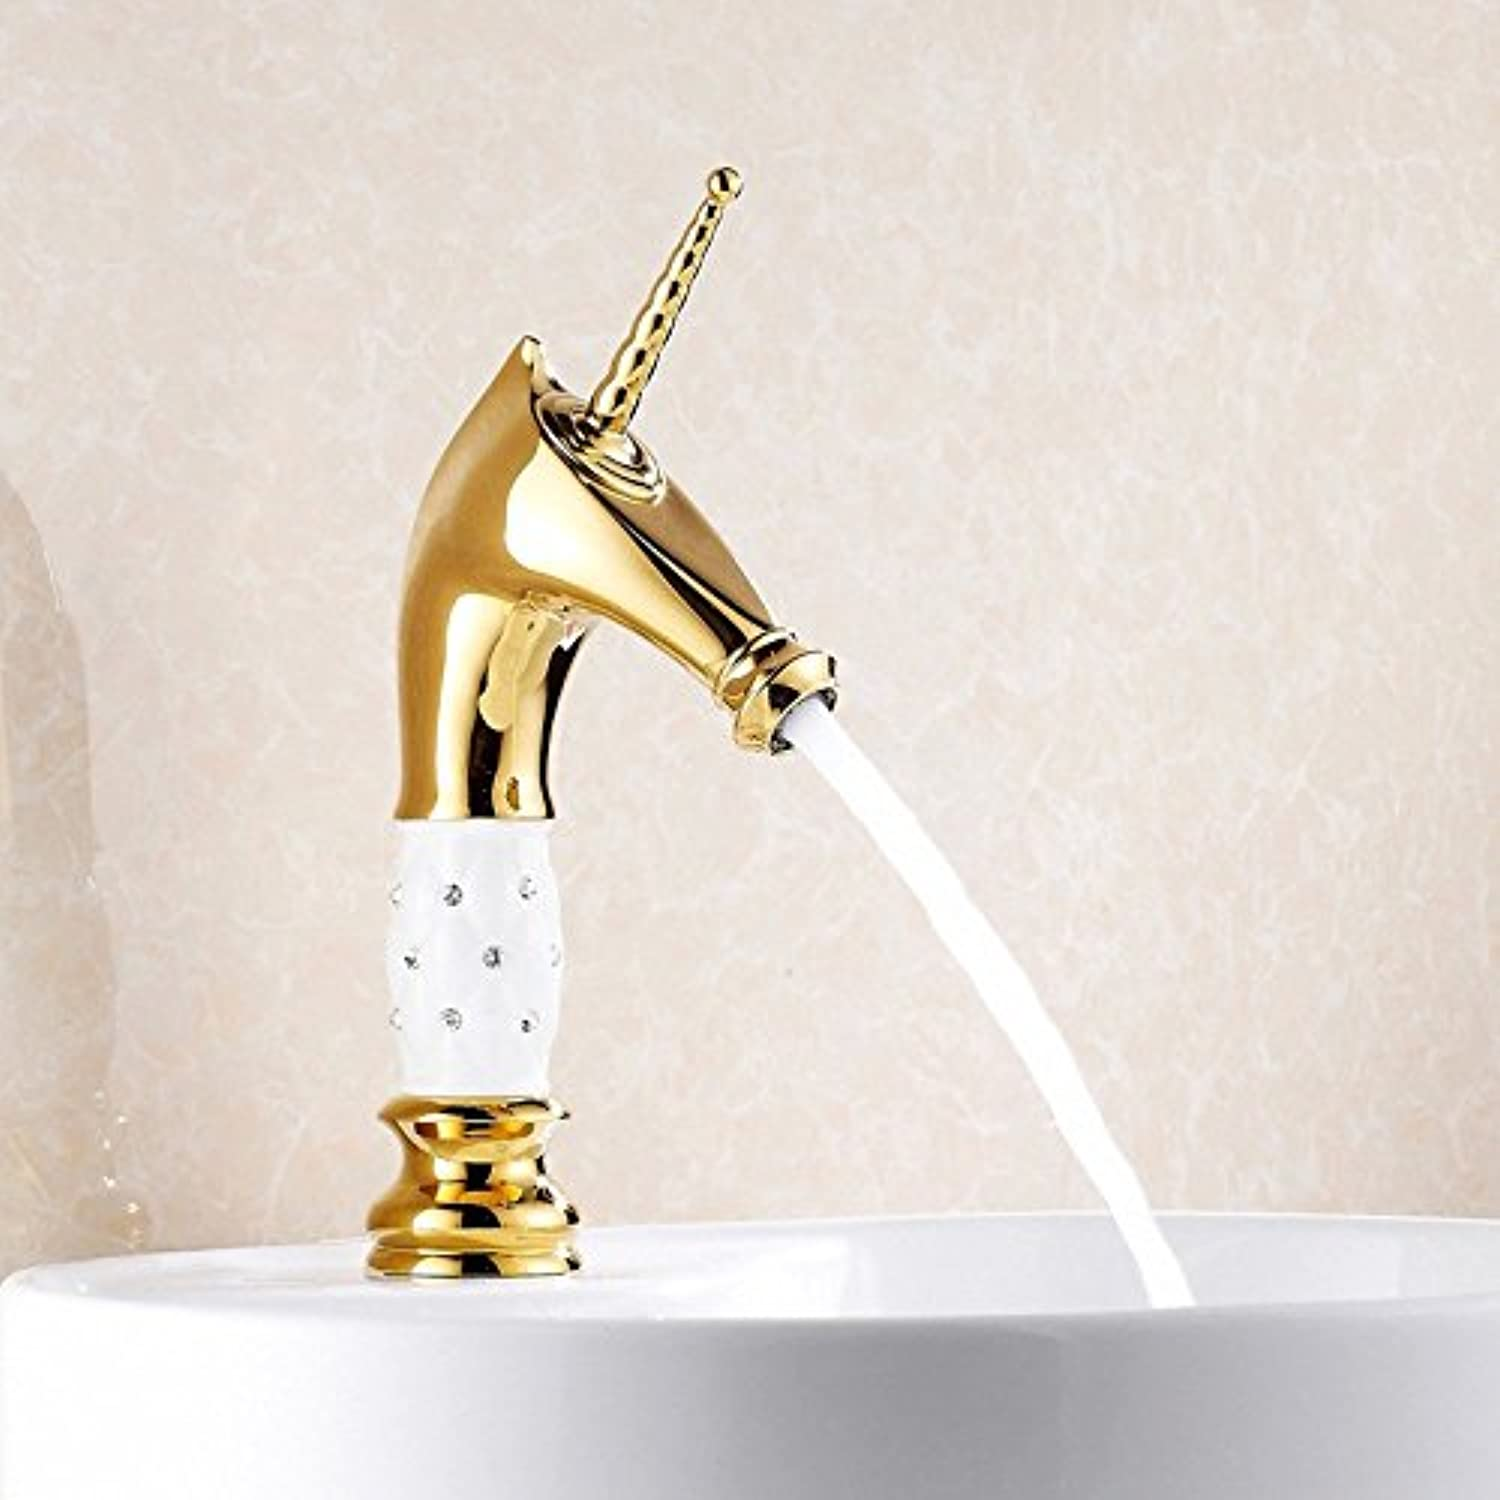 SHLONG Tap gold-Plated Faucet Copper Hot and Cold Faucet Basin gold with Diamond Faucet